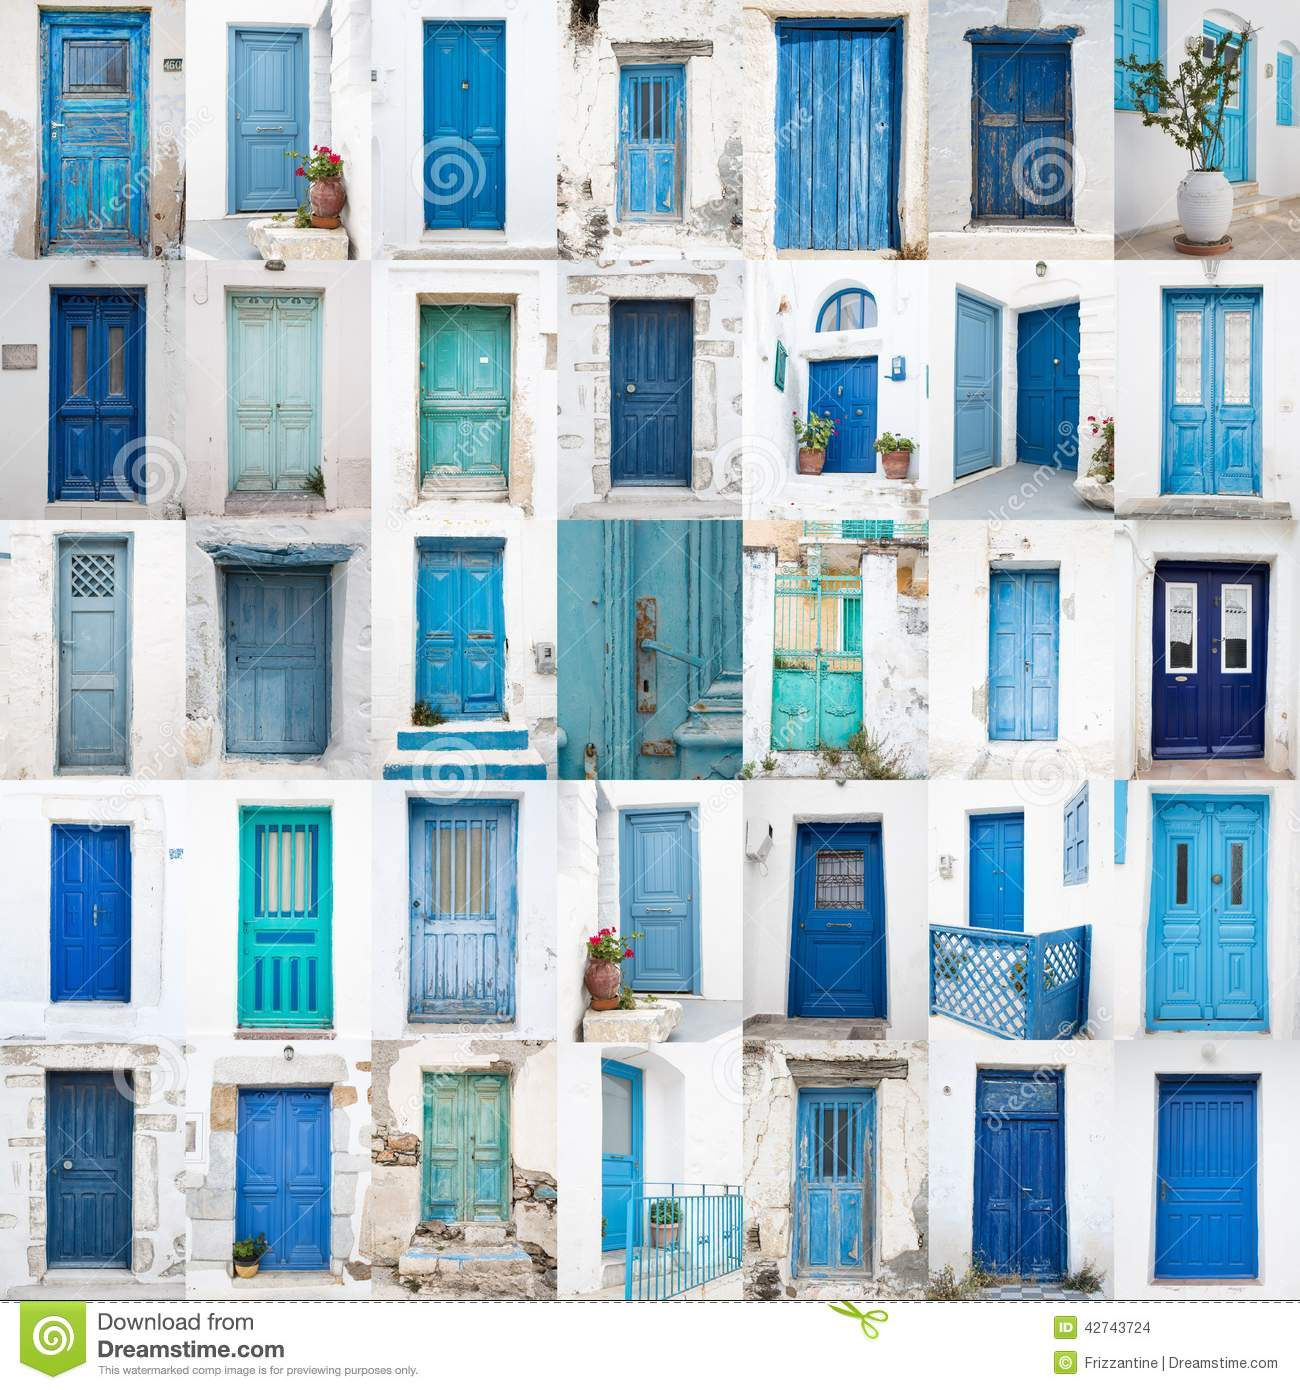 Collage of different blue old wooden doors from greek islands - Stock Images  sc 1 st  Dreamstime.com & Old blue doors stock image. Image of cobbled door streat - 35950845